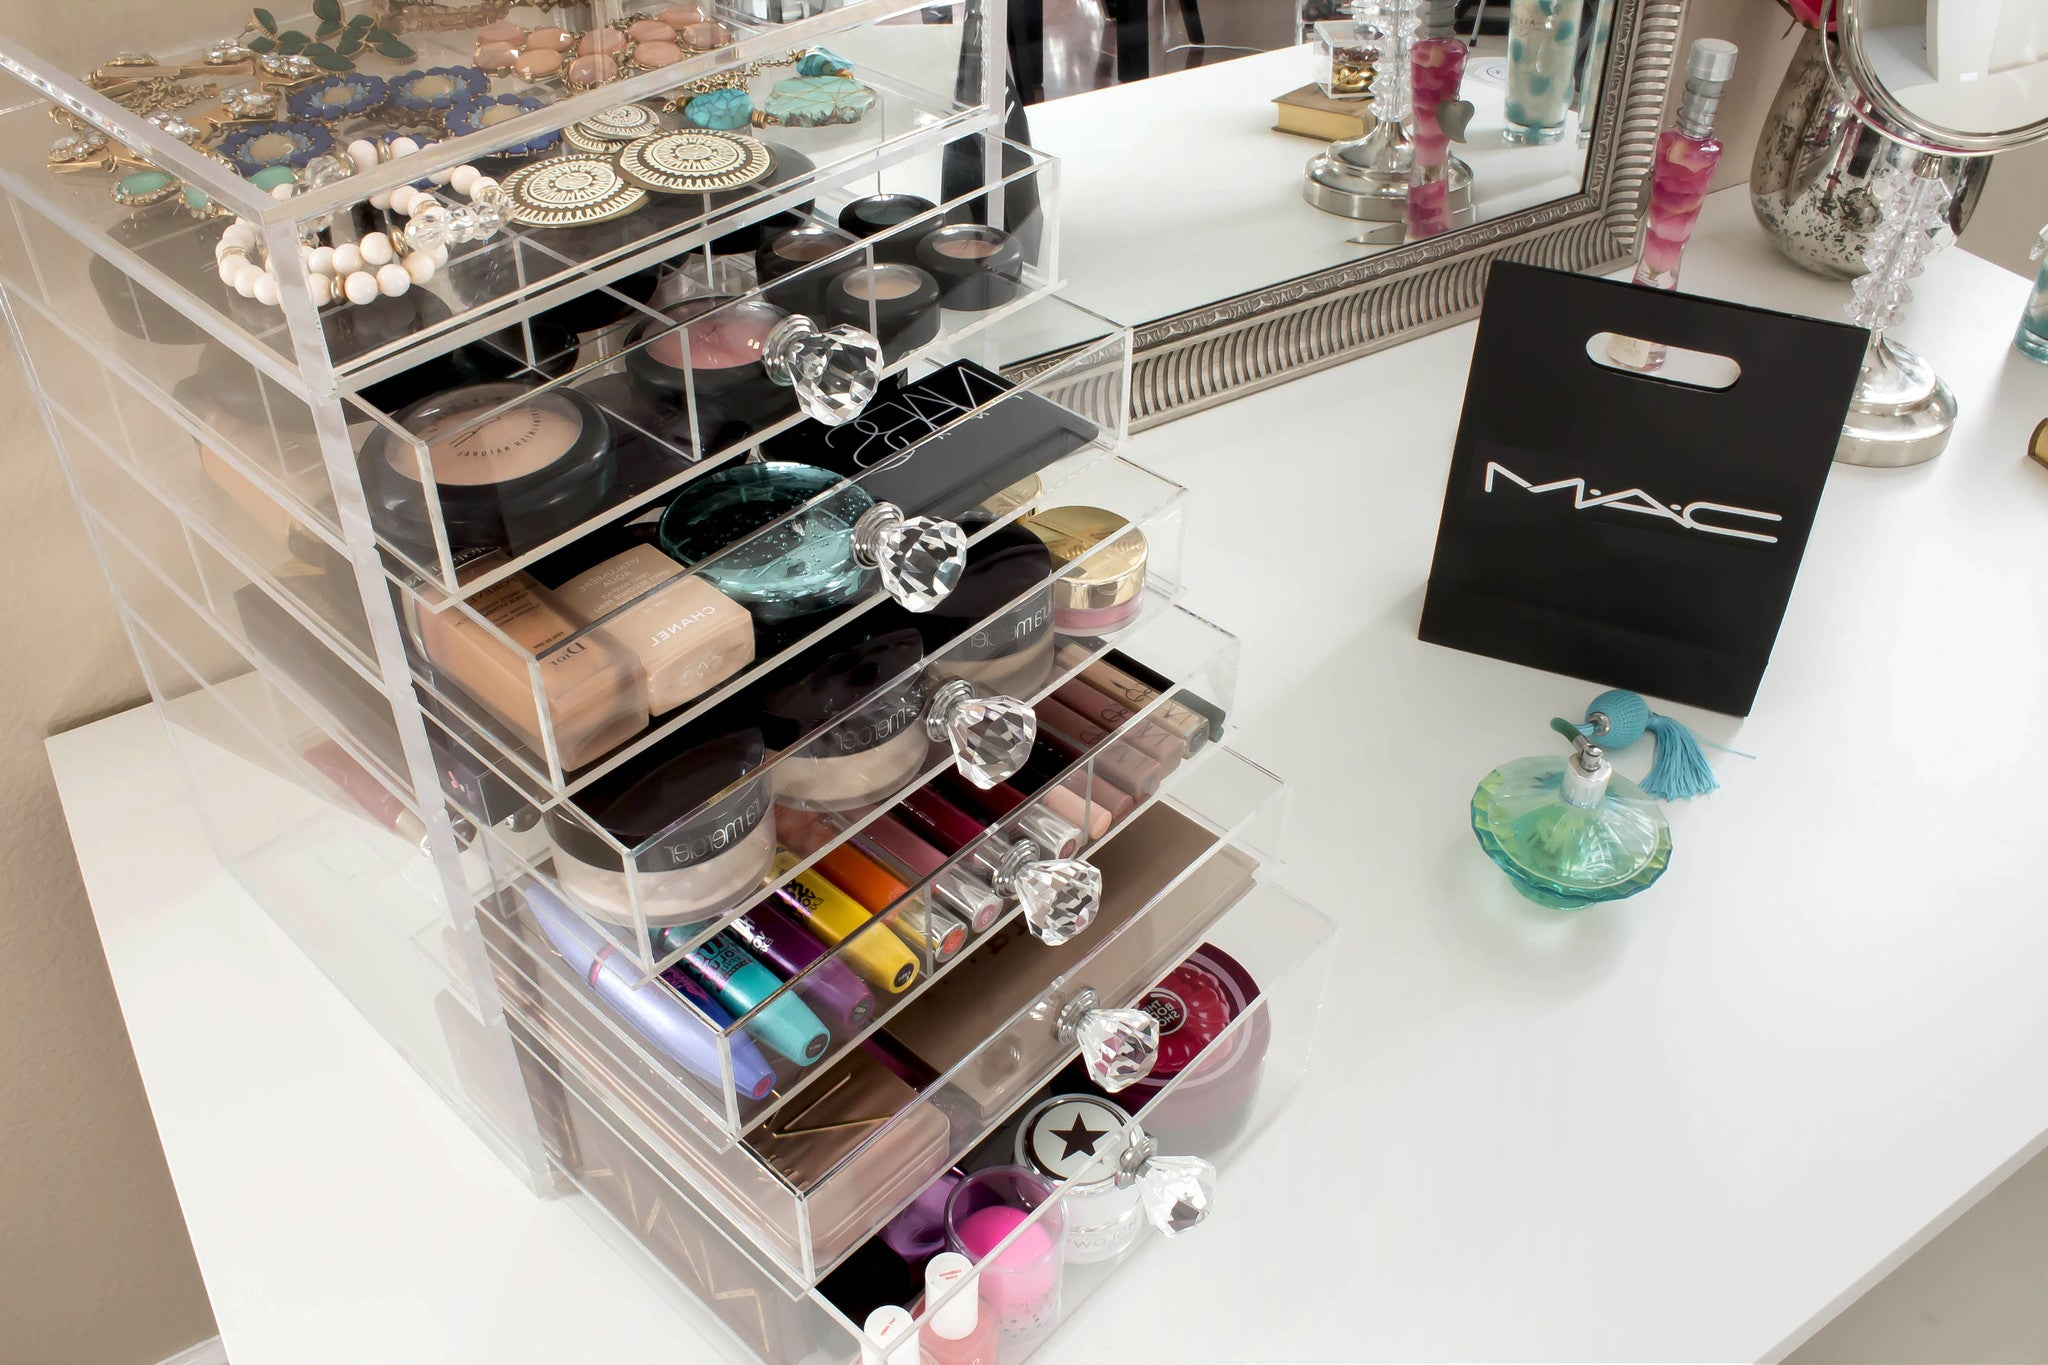 ... Storage · Clear Acrylic Makeup Organizer With 6 Drawers Flip Top and Diamond Handles ... & Clear Acrylic Makeup Organizer Kardashian-style storage Cutie Cube ...